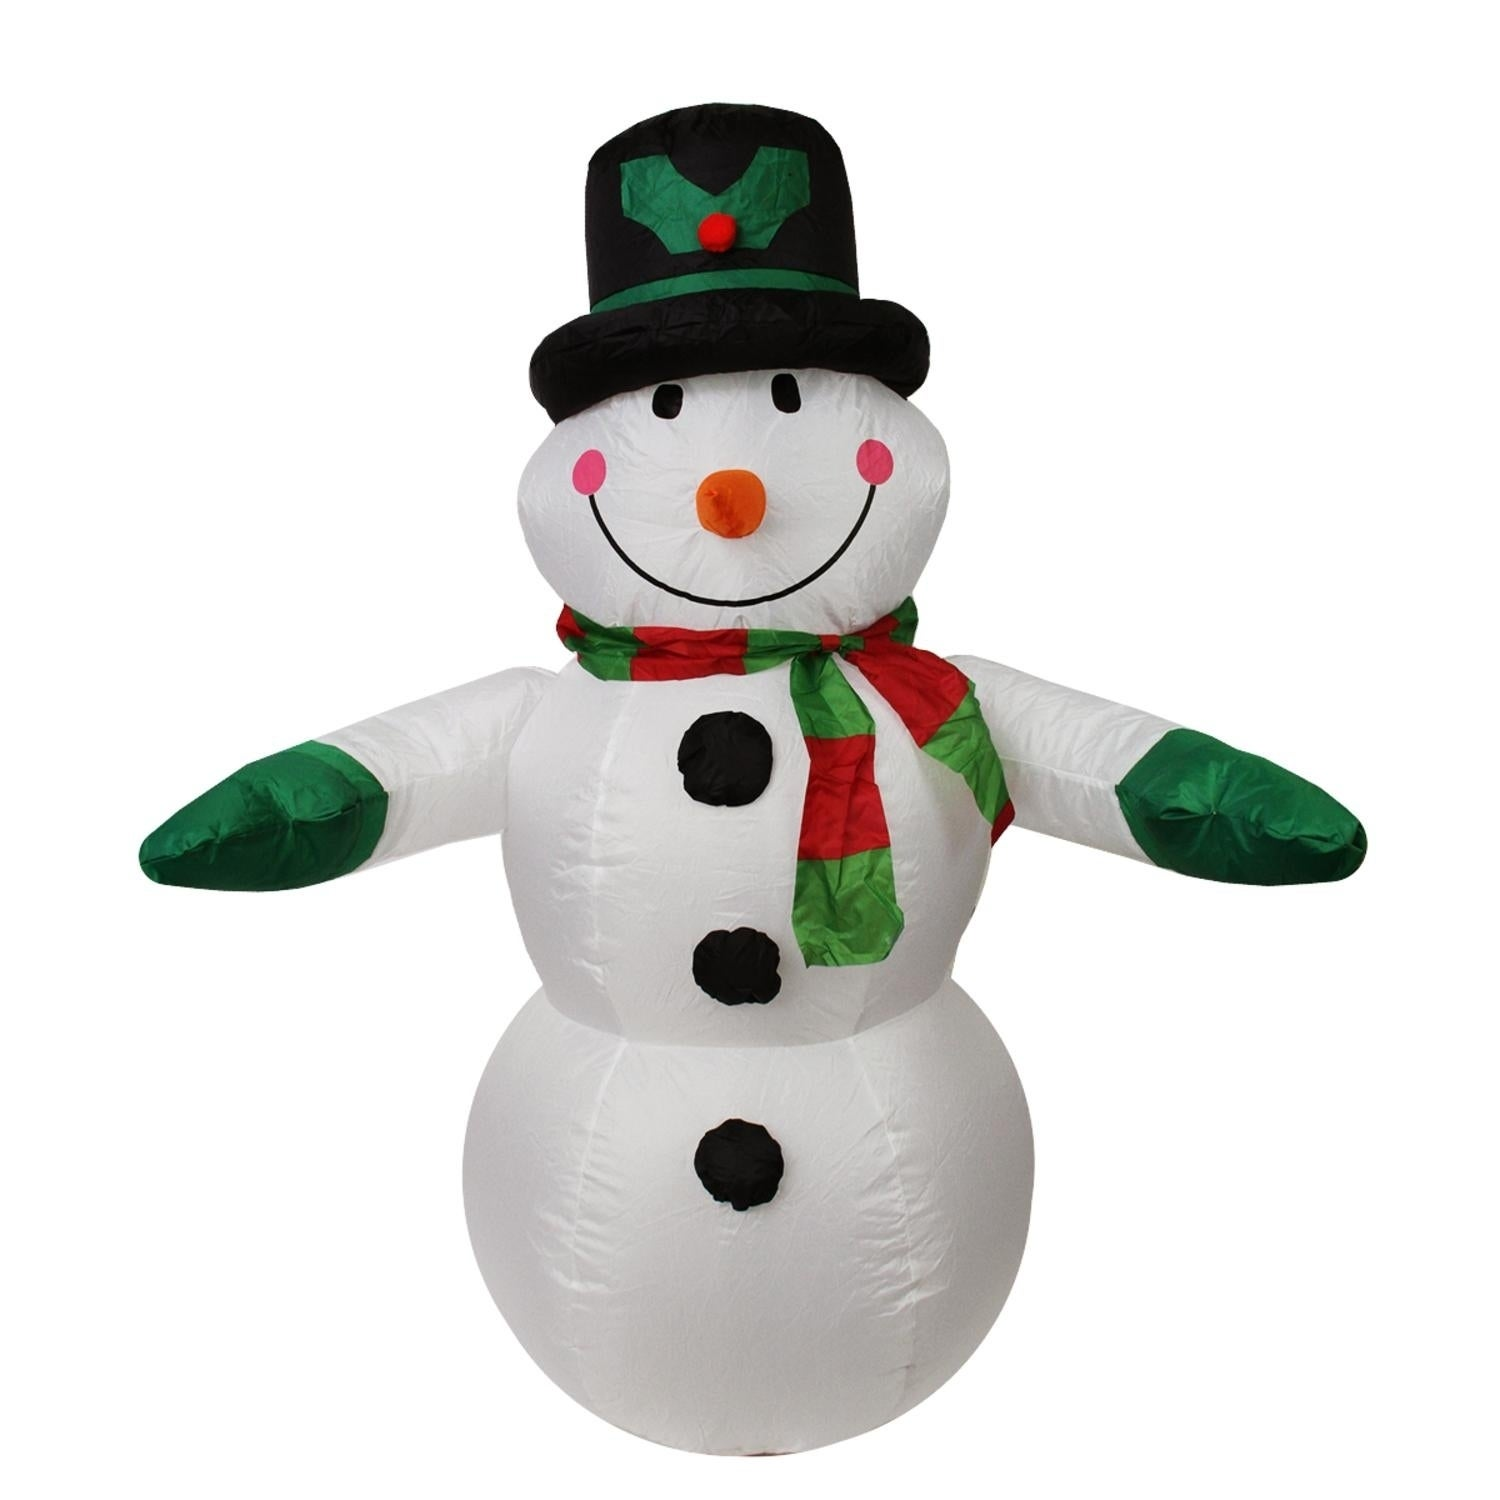 Lb International 4' Inflatable Lighted Snowman with Top H...